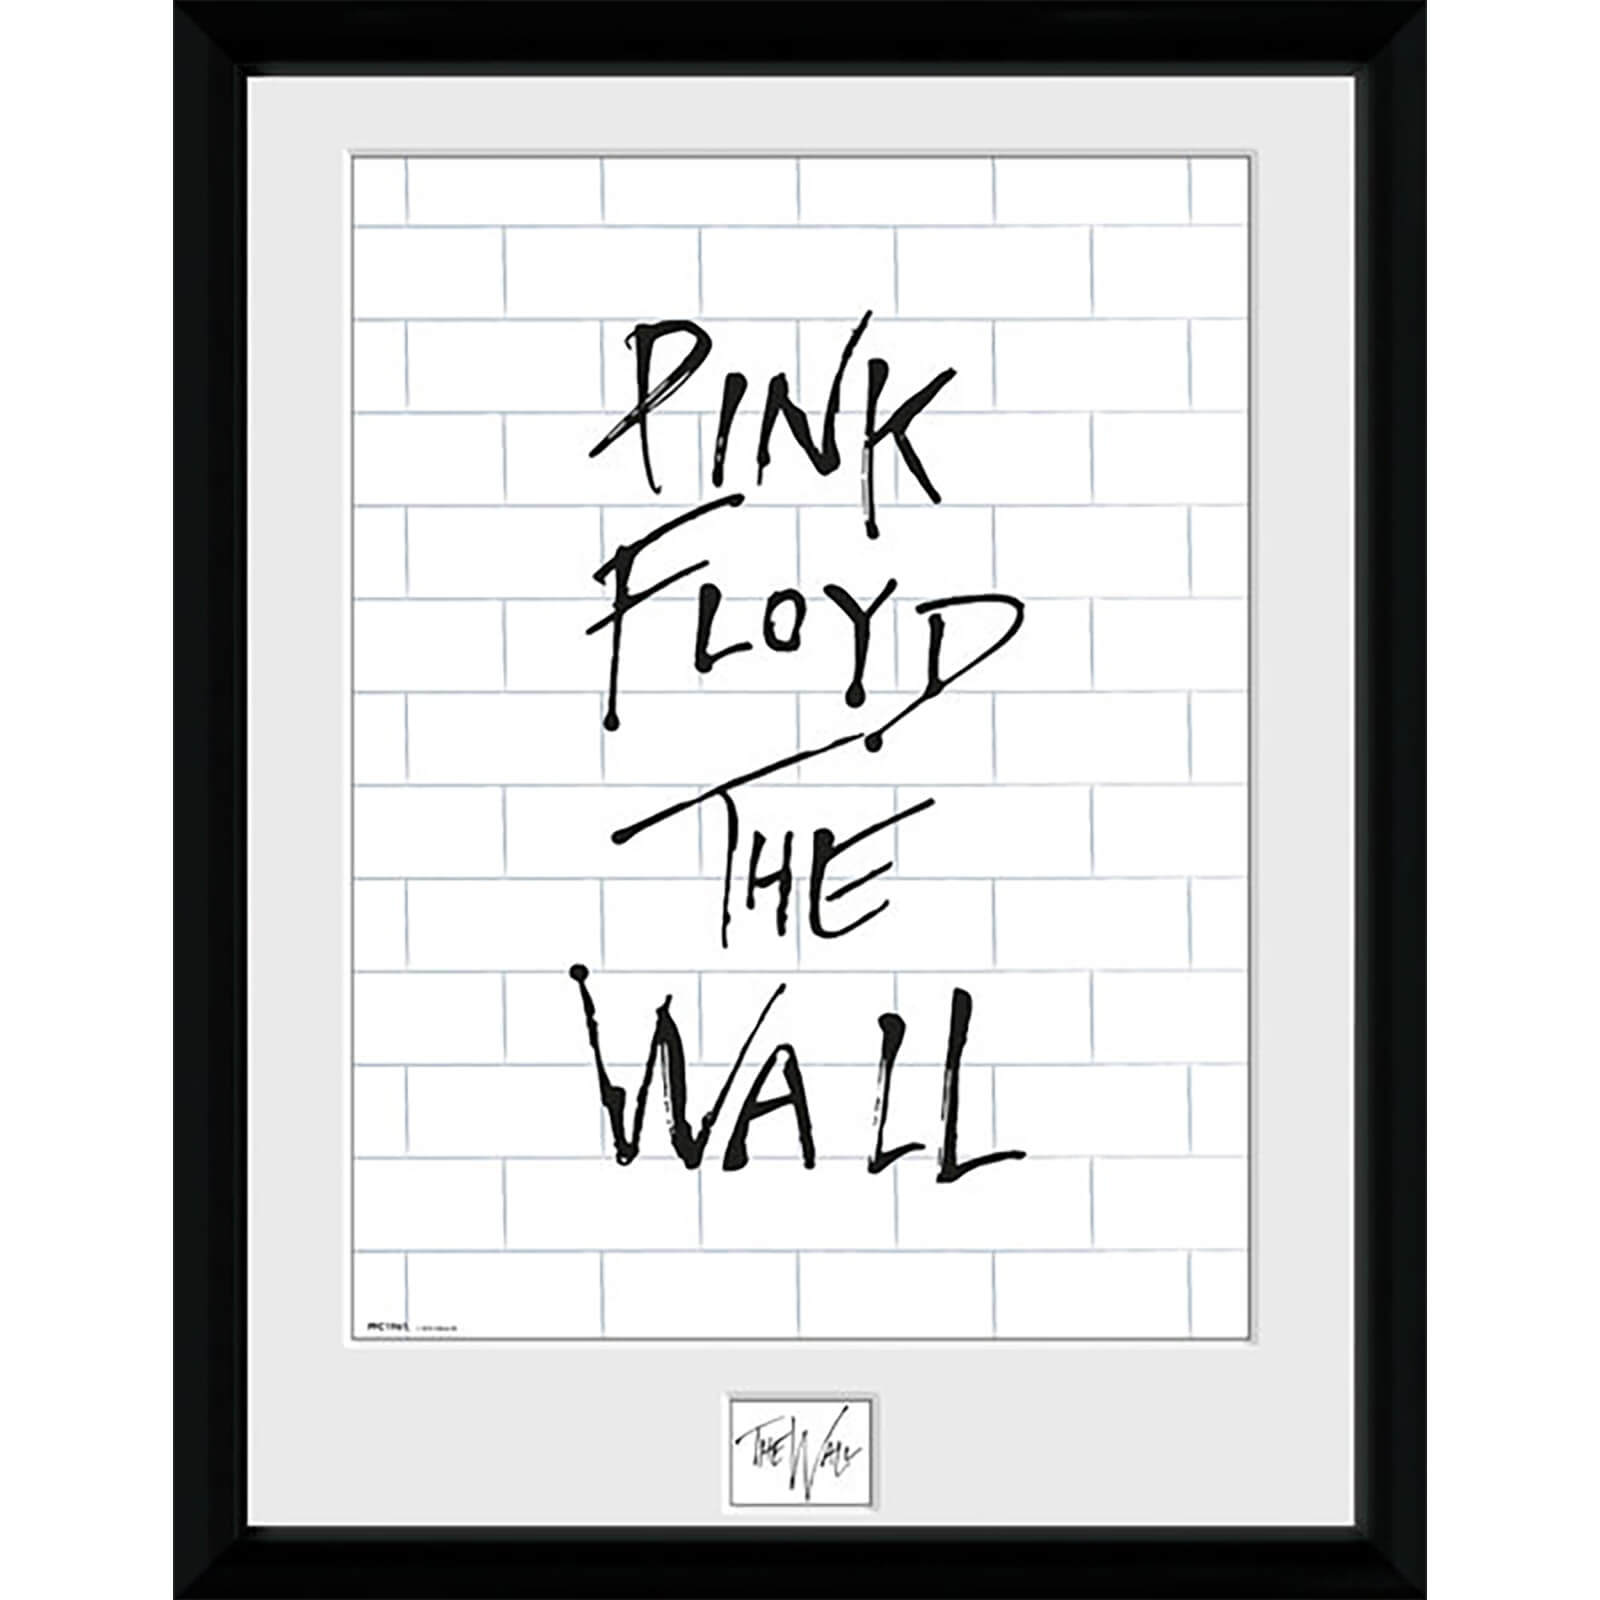 The Wall White Wall - 16 x 12 Inches Framed Photograph